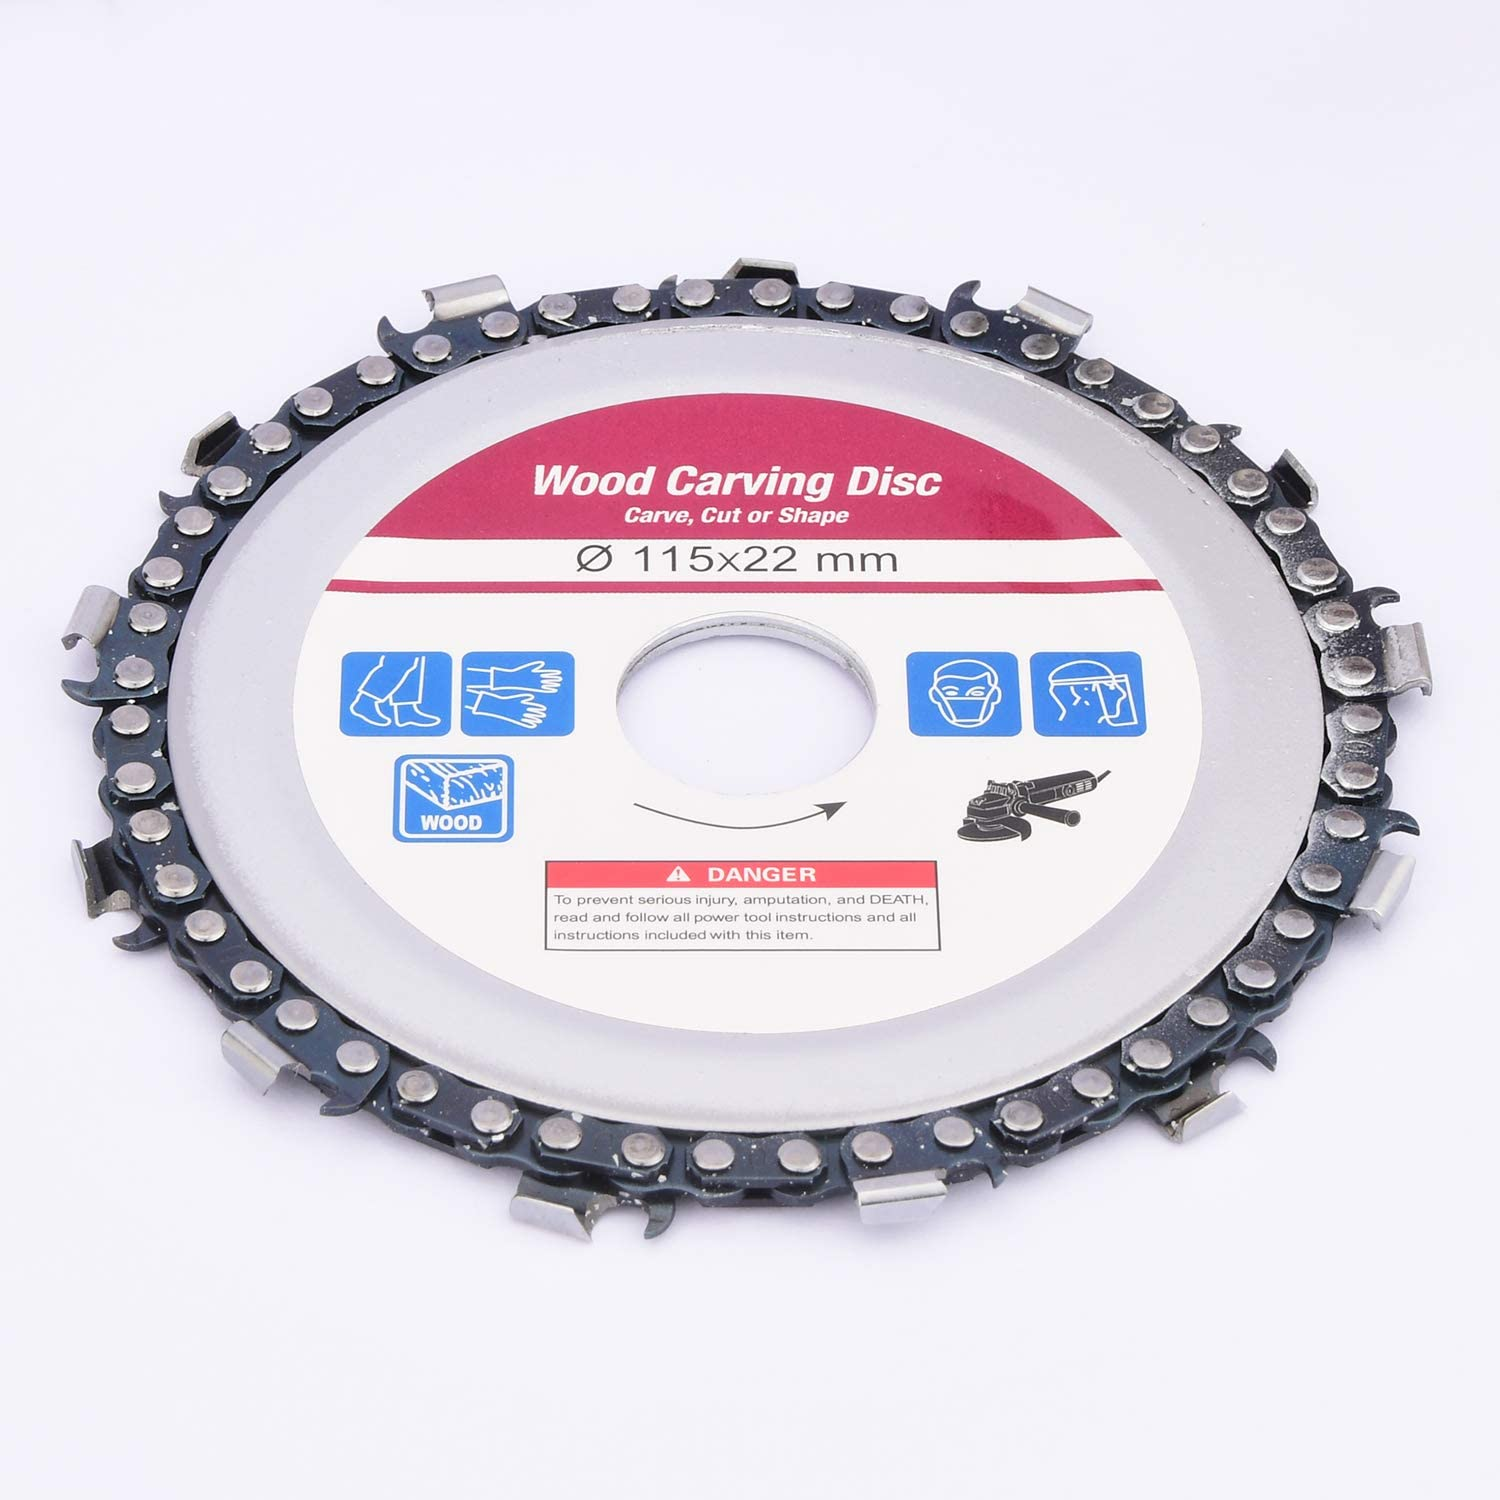 4.5 Inch Wood Carving Disc Woodworking Chain Plate Grinder Chain Saws Disc